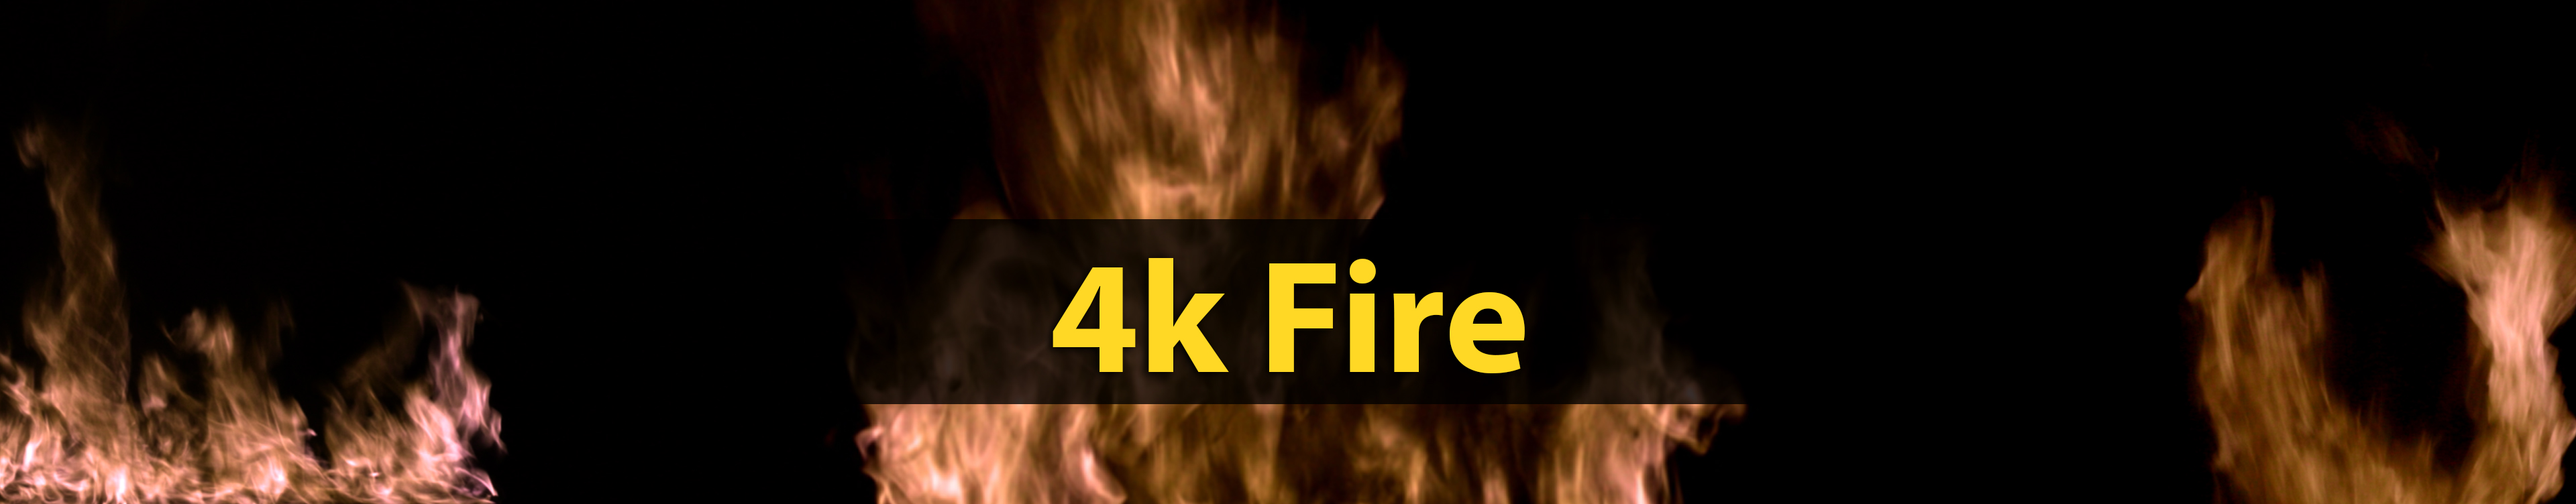 header image for the product page offering downloadable, 4k fire, green screened stock video